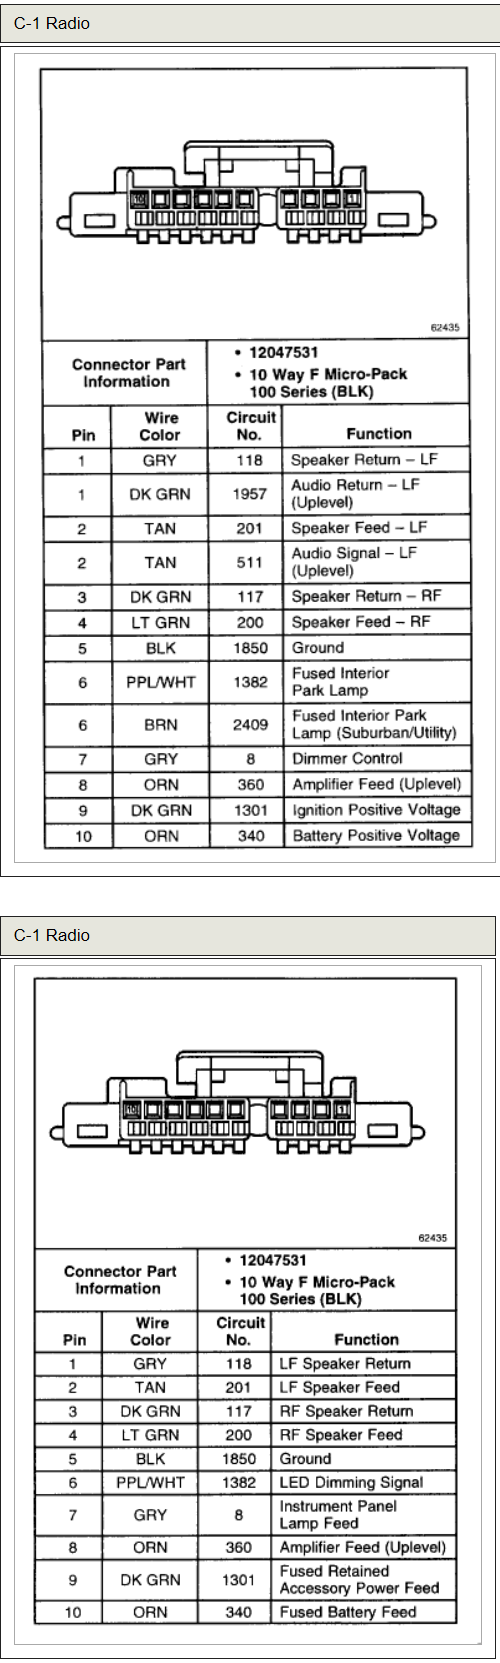 2005 chevy equinox stereo wiring diagram chevrolet car radio stereo audio wiring diagram autoradio chevrolet venture 2001 2005 stereo wiring connector